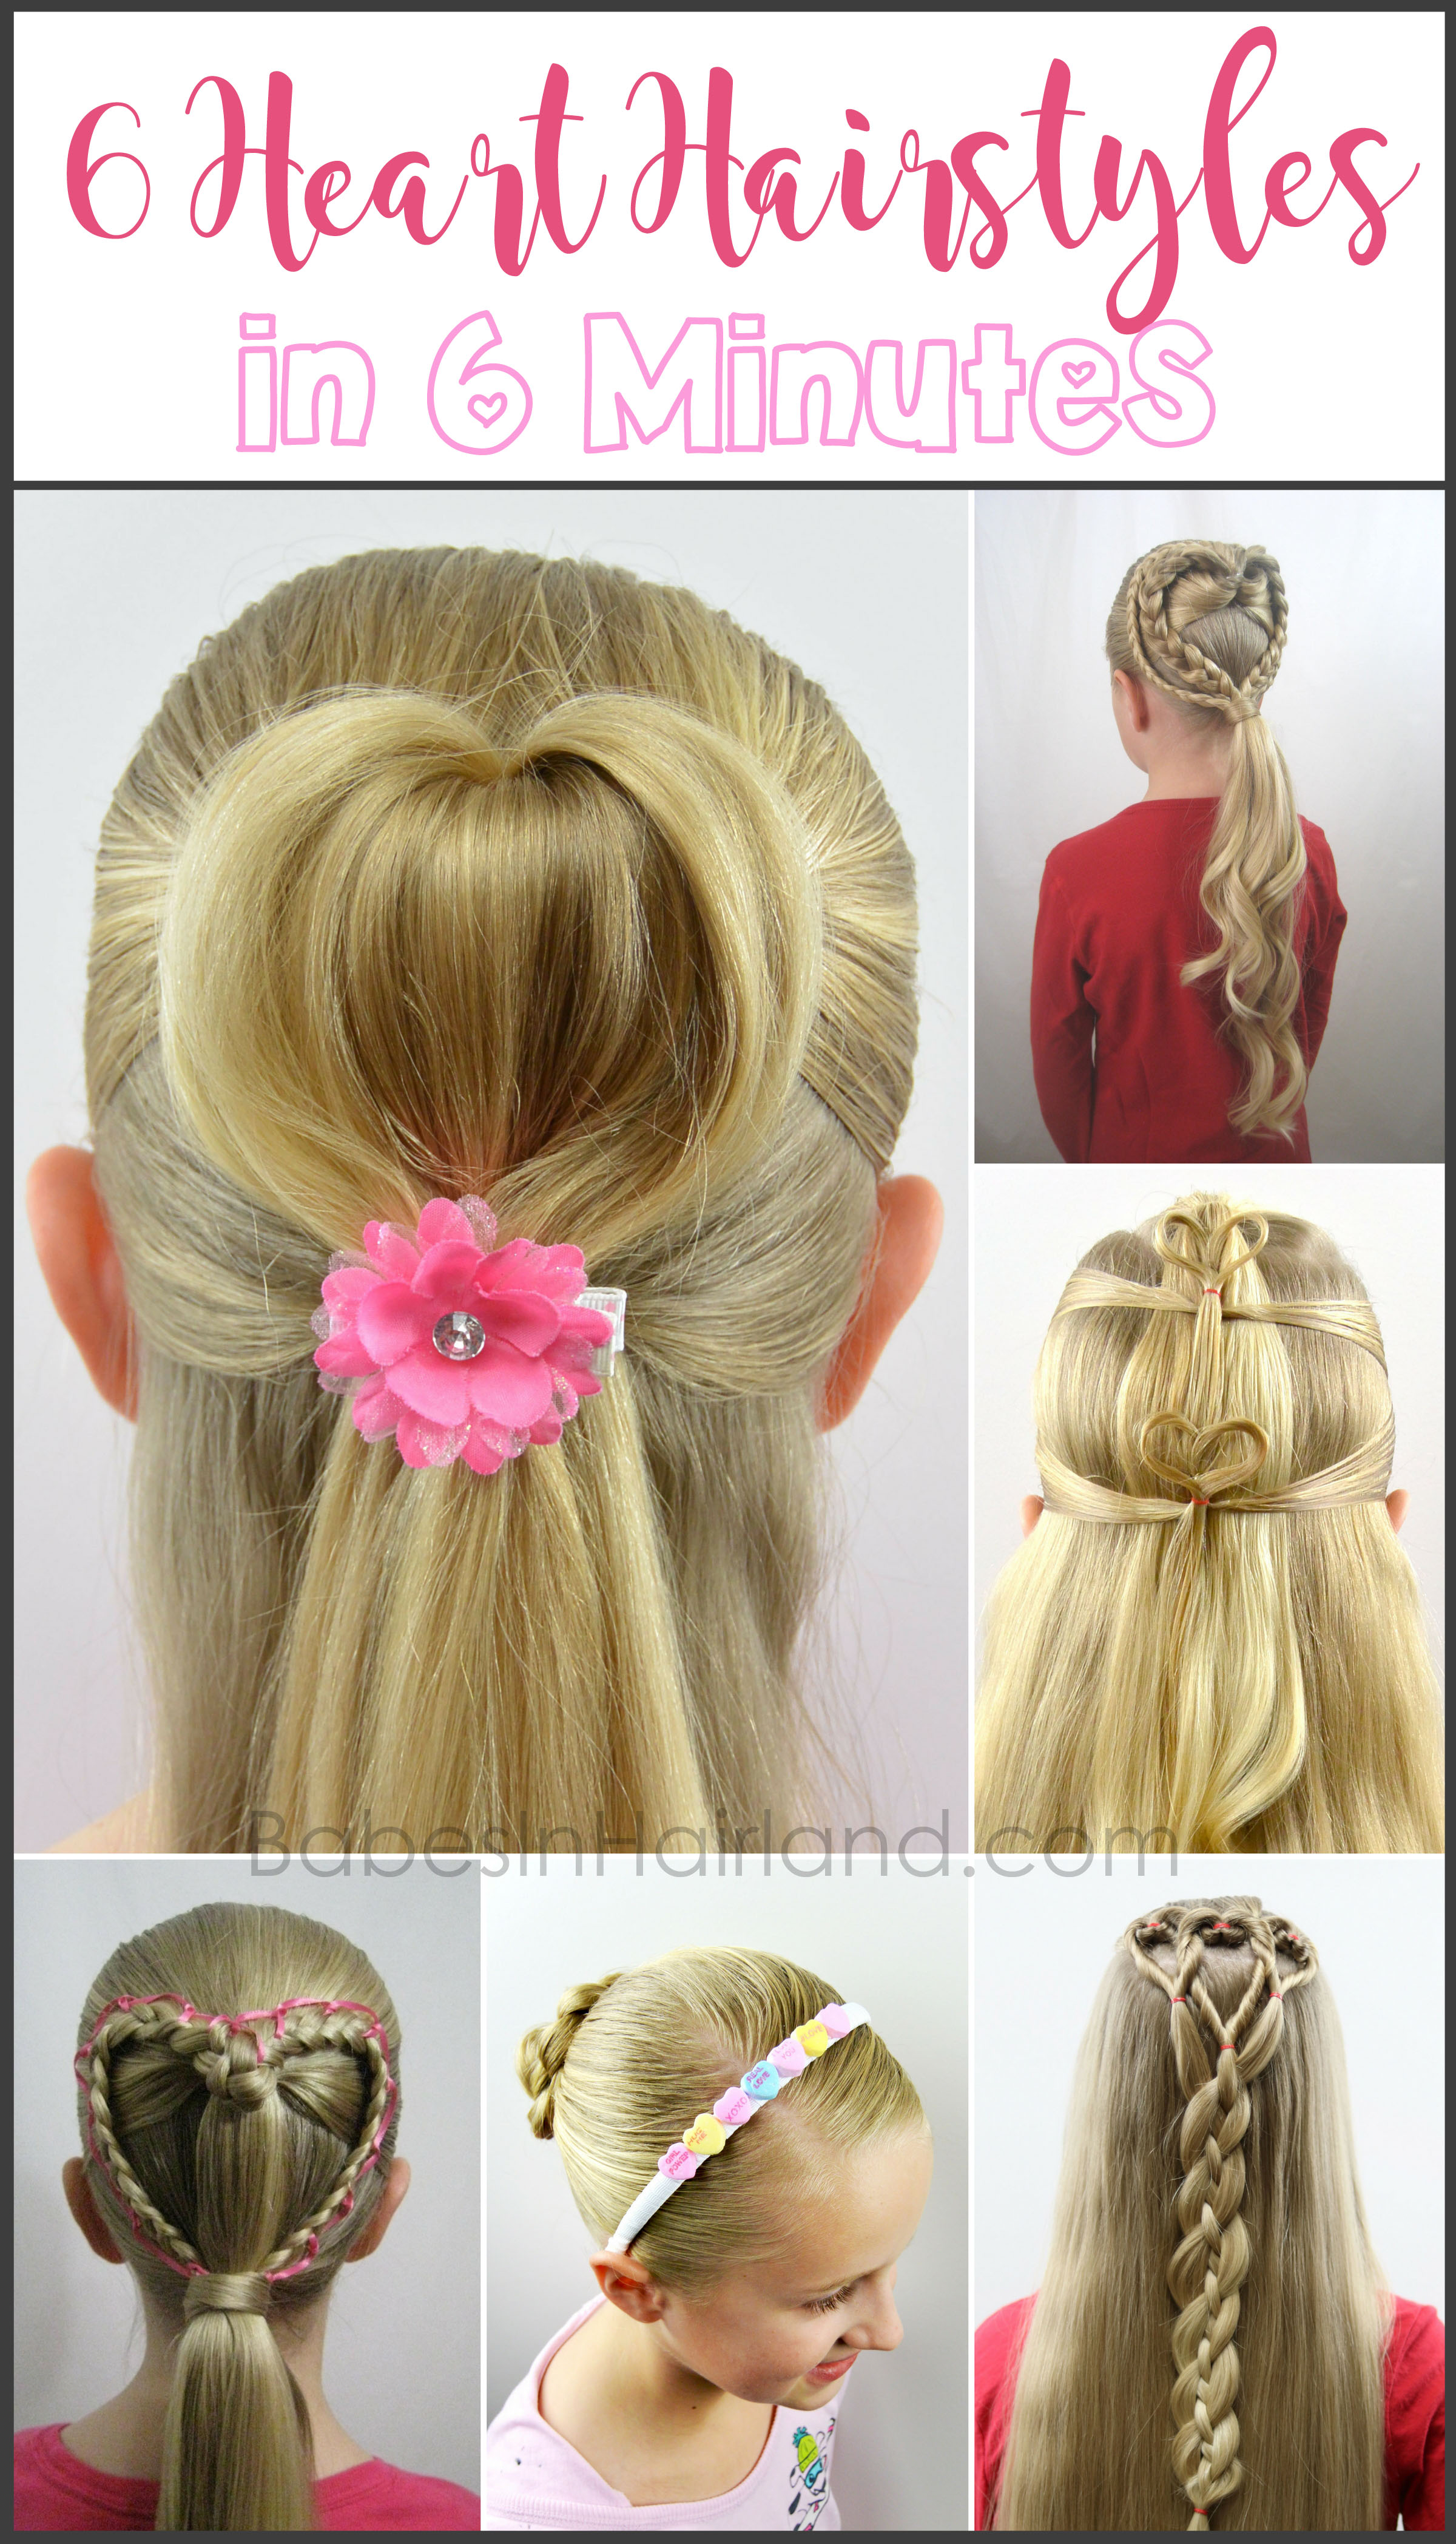 6 Heart Hairstyles In 6 Minutes Valentine S Day Hairstyles